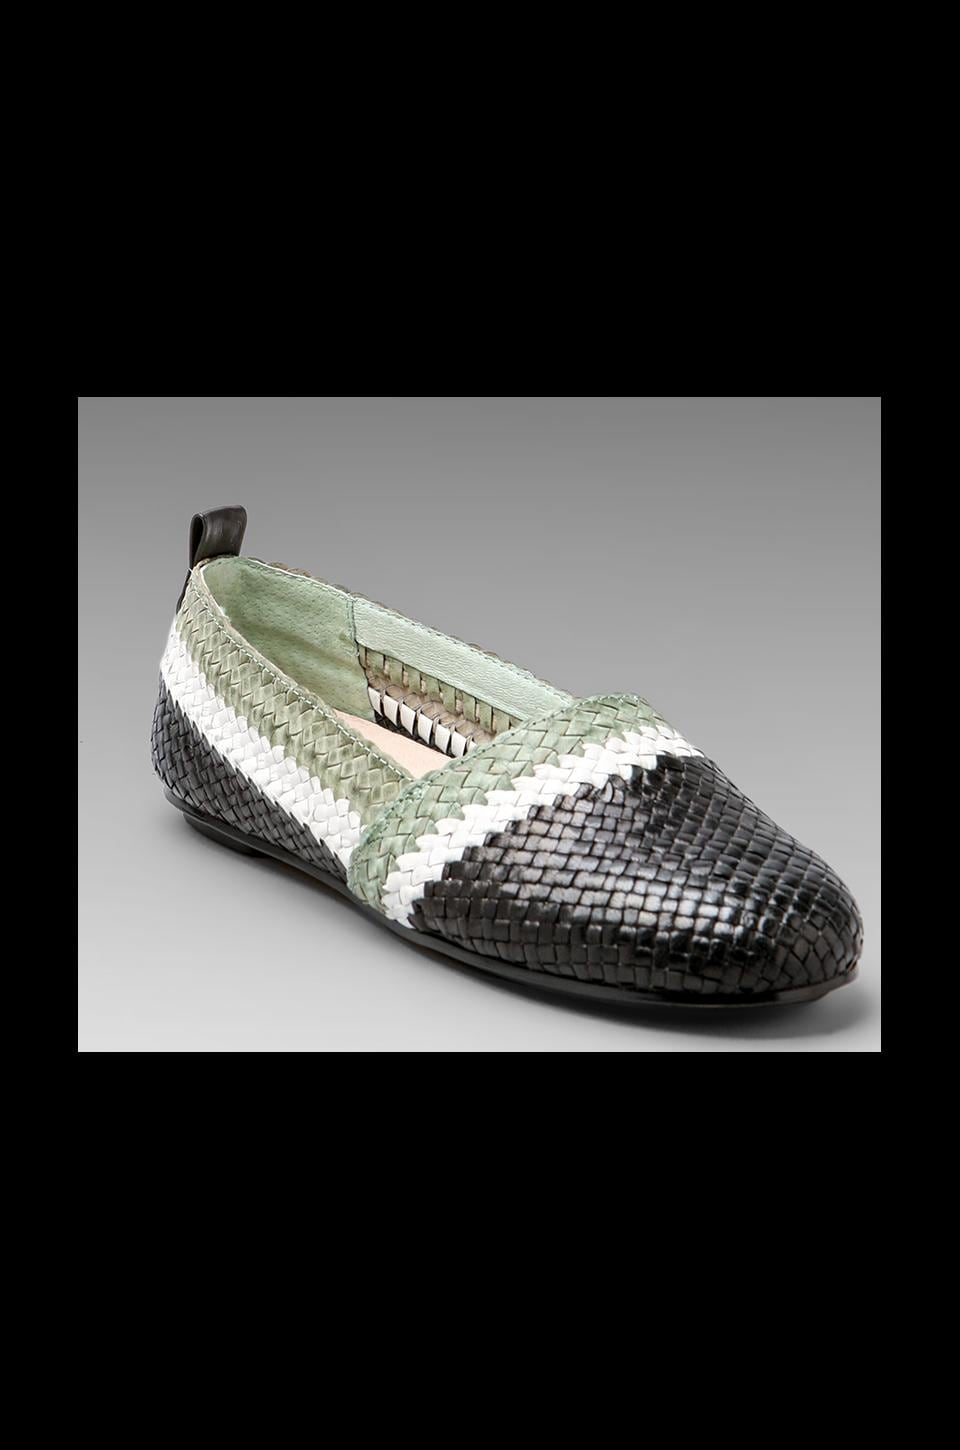 House of Harlow 1960 House of Harlow Woven Kye Flat in Black/Mint/White